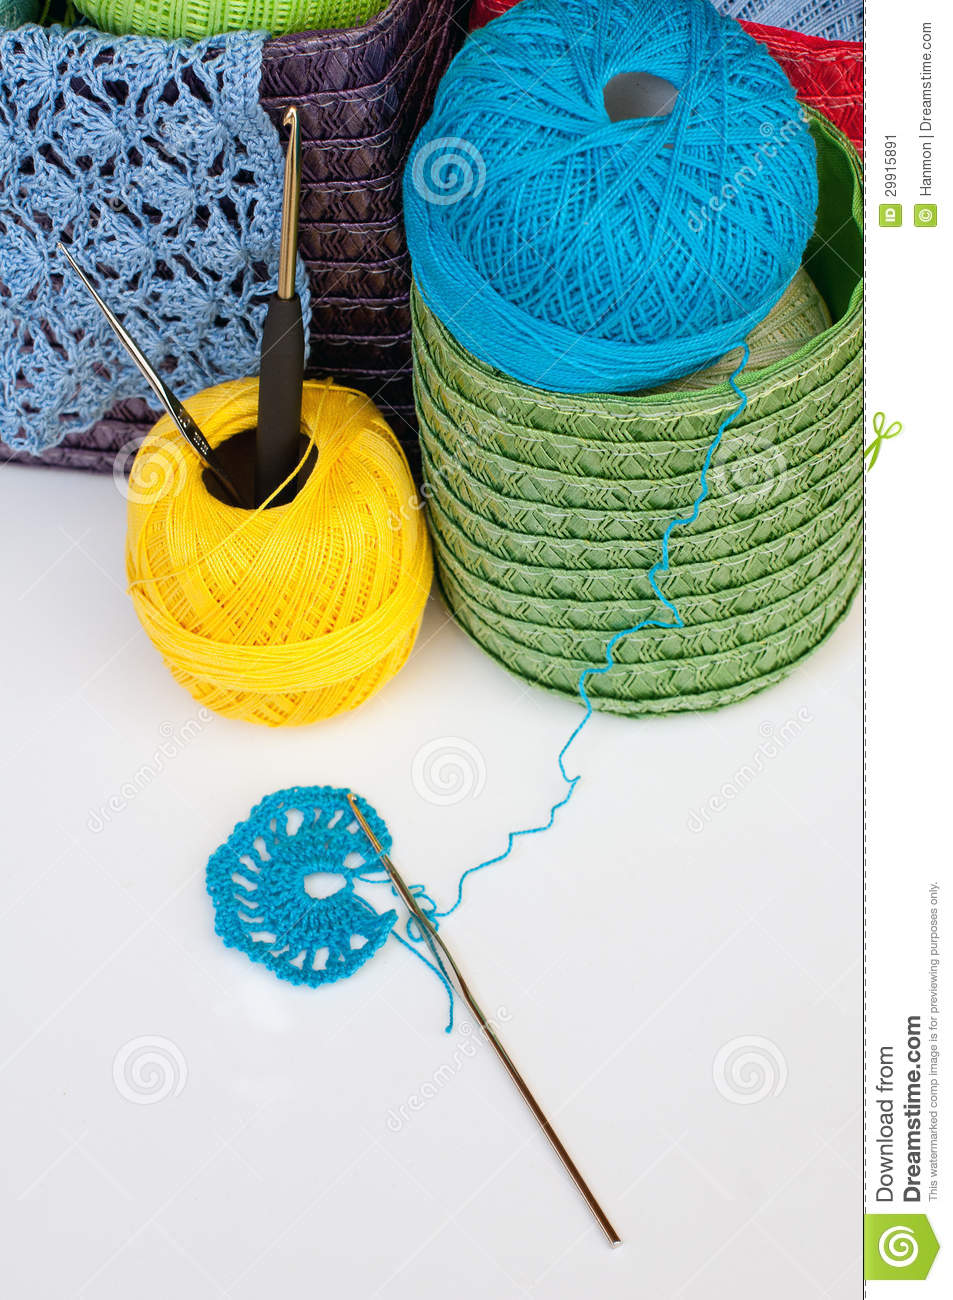 Crocheting Equipment : Crochet Equipment Stock Image - Image: 29915891